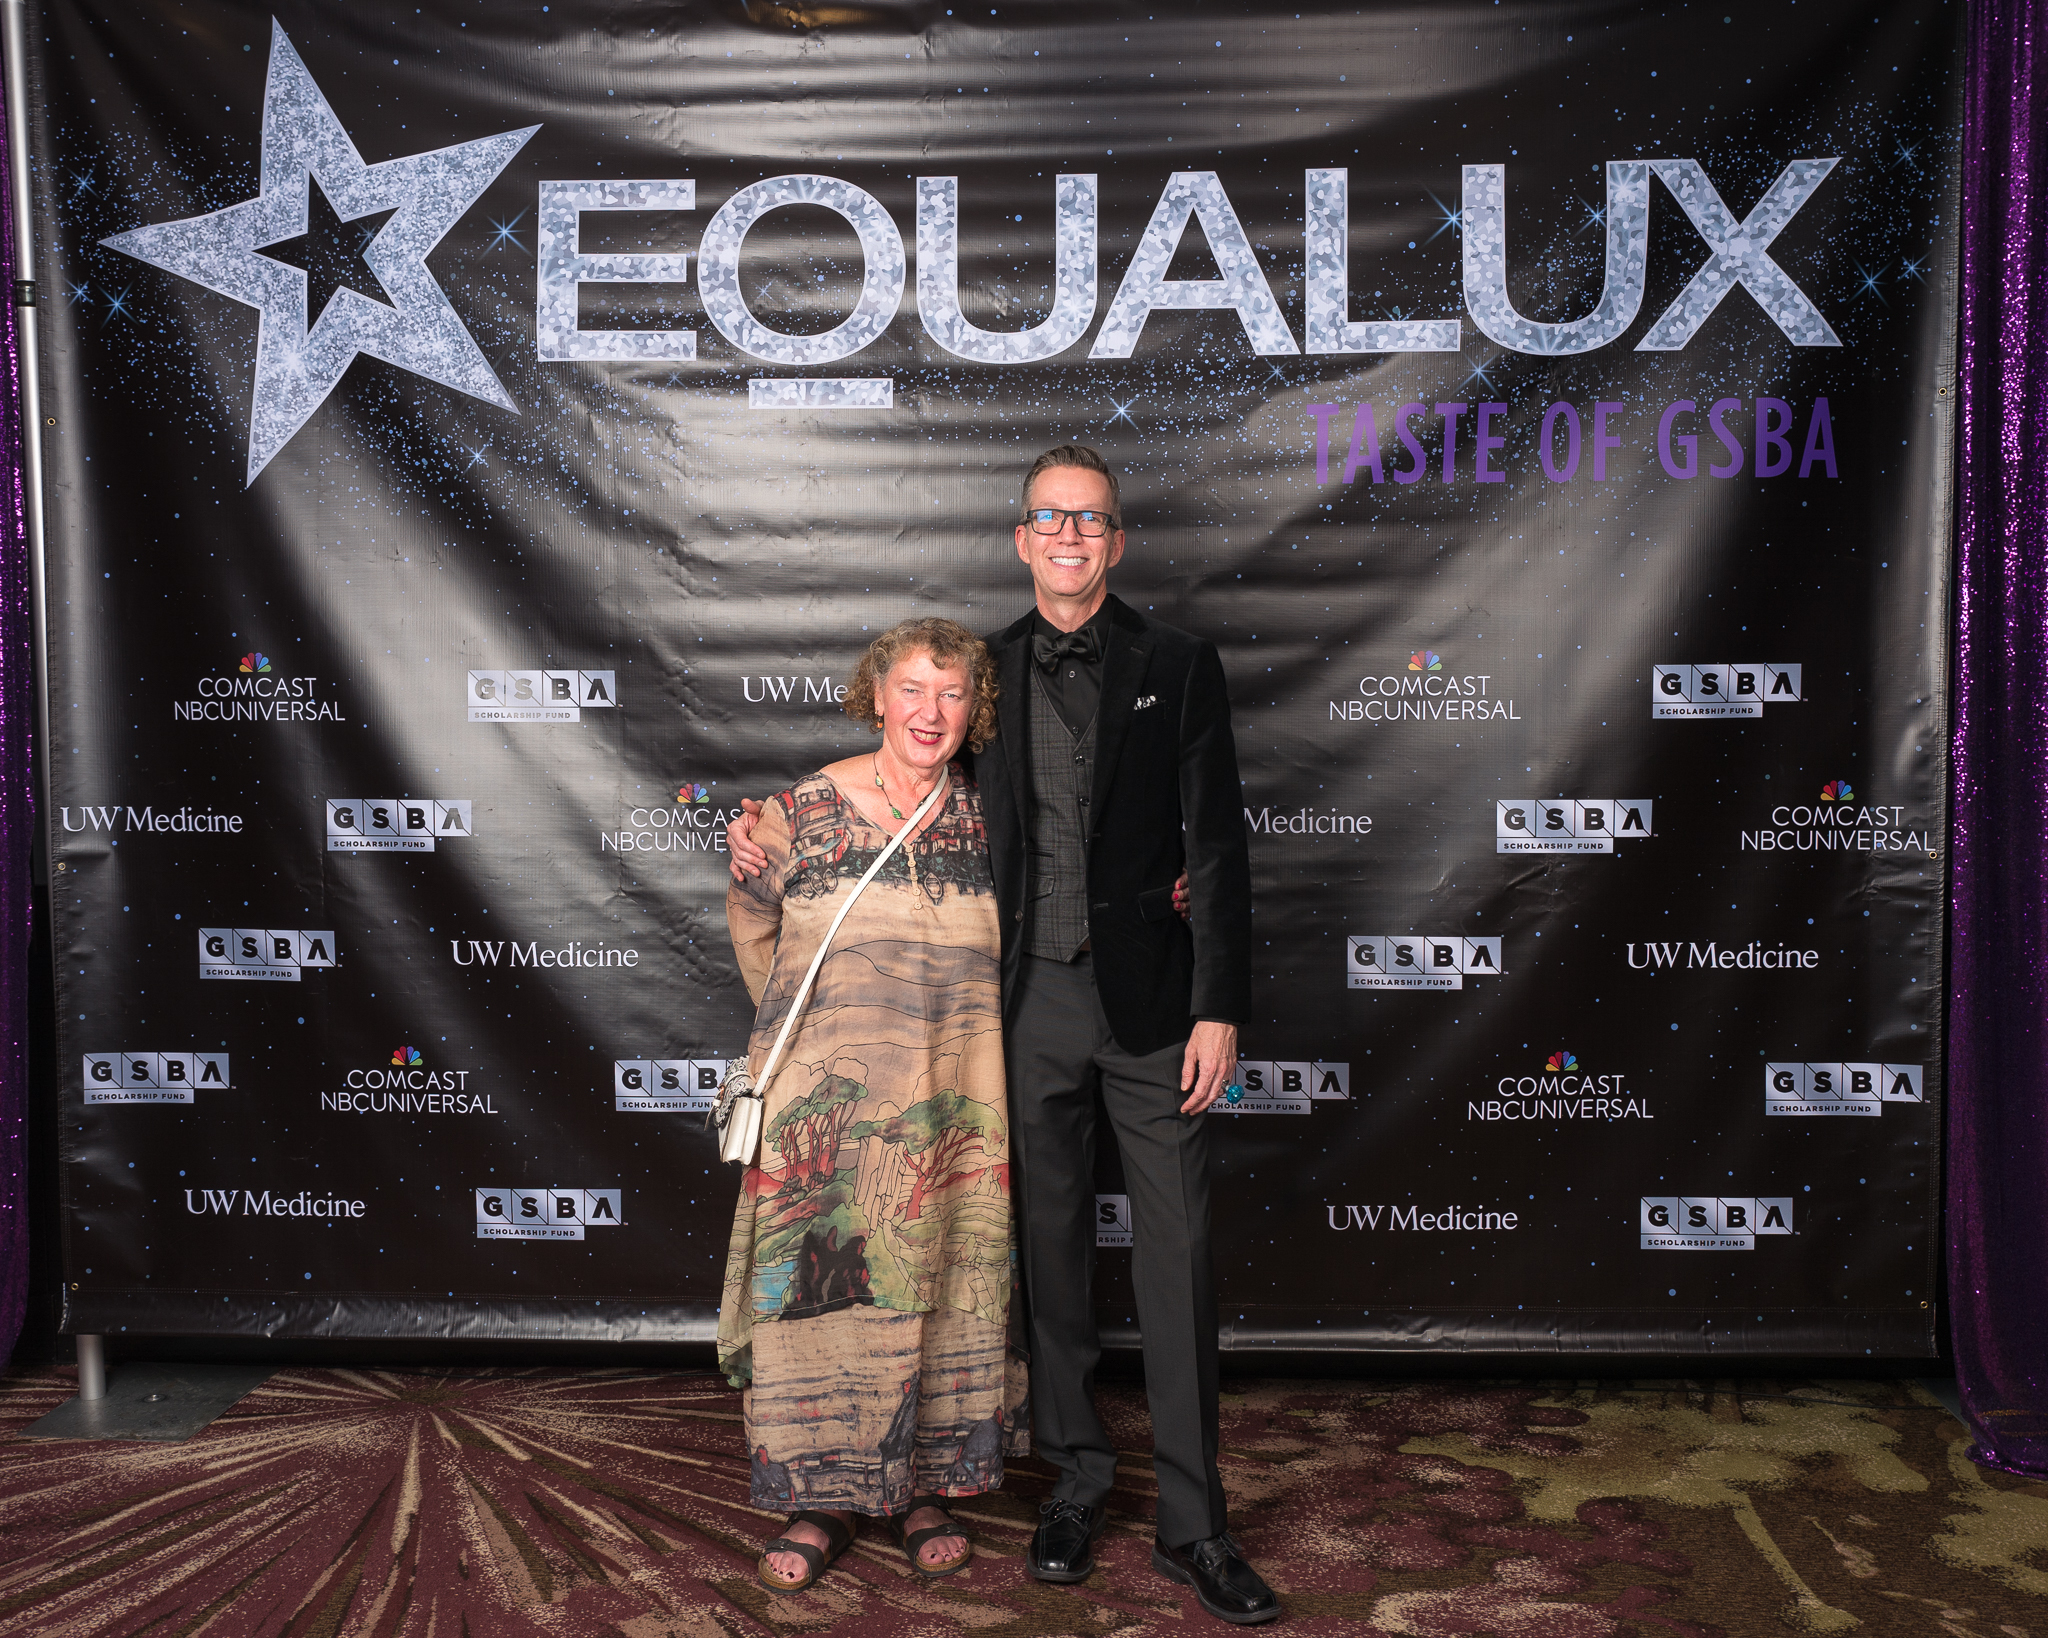 111718_GSBA EQUALUX at The Westin Seattle (Credit- Nate Gowdy)-67.jpg